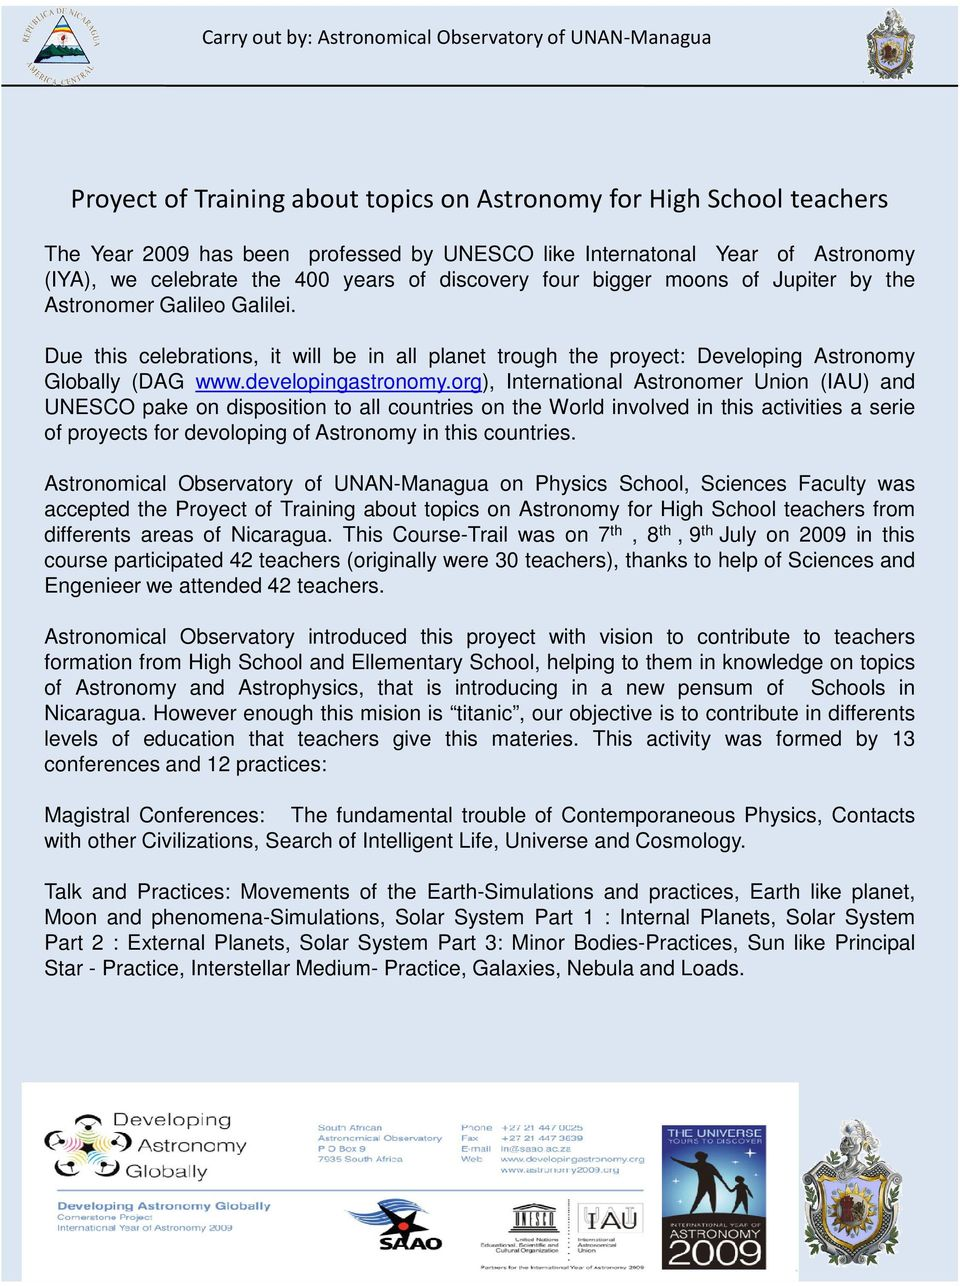 org), International Astronomer Union (IAU) and UNESCO pake on disposition to all countries on the World involved in this activities a serie of proyects for devoloping of Astronomy in this countries.